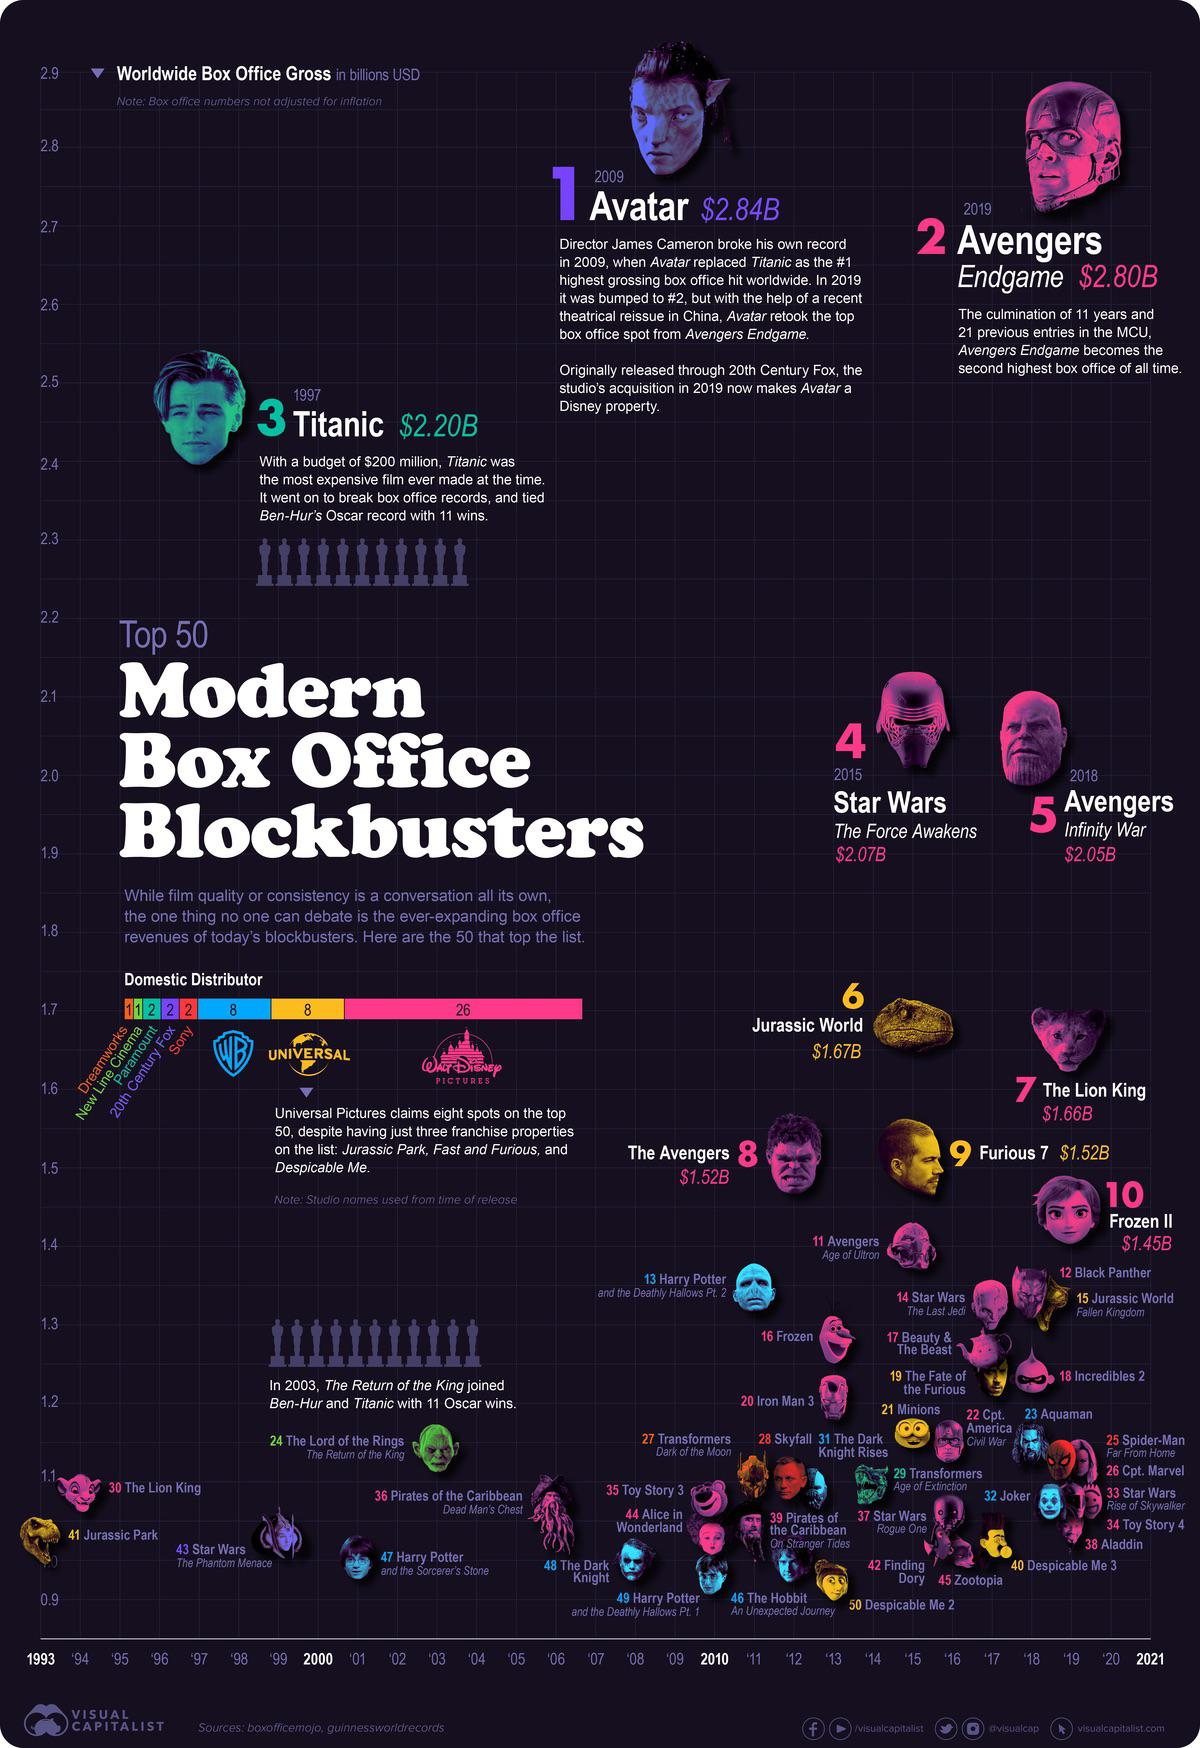 box-office-blockbusters-compared-chartistry